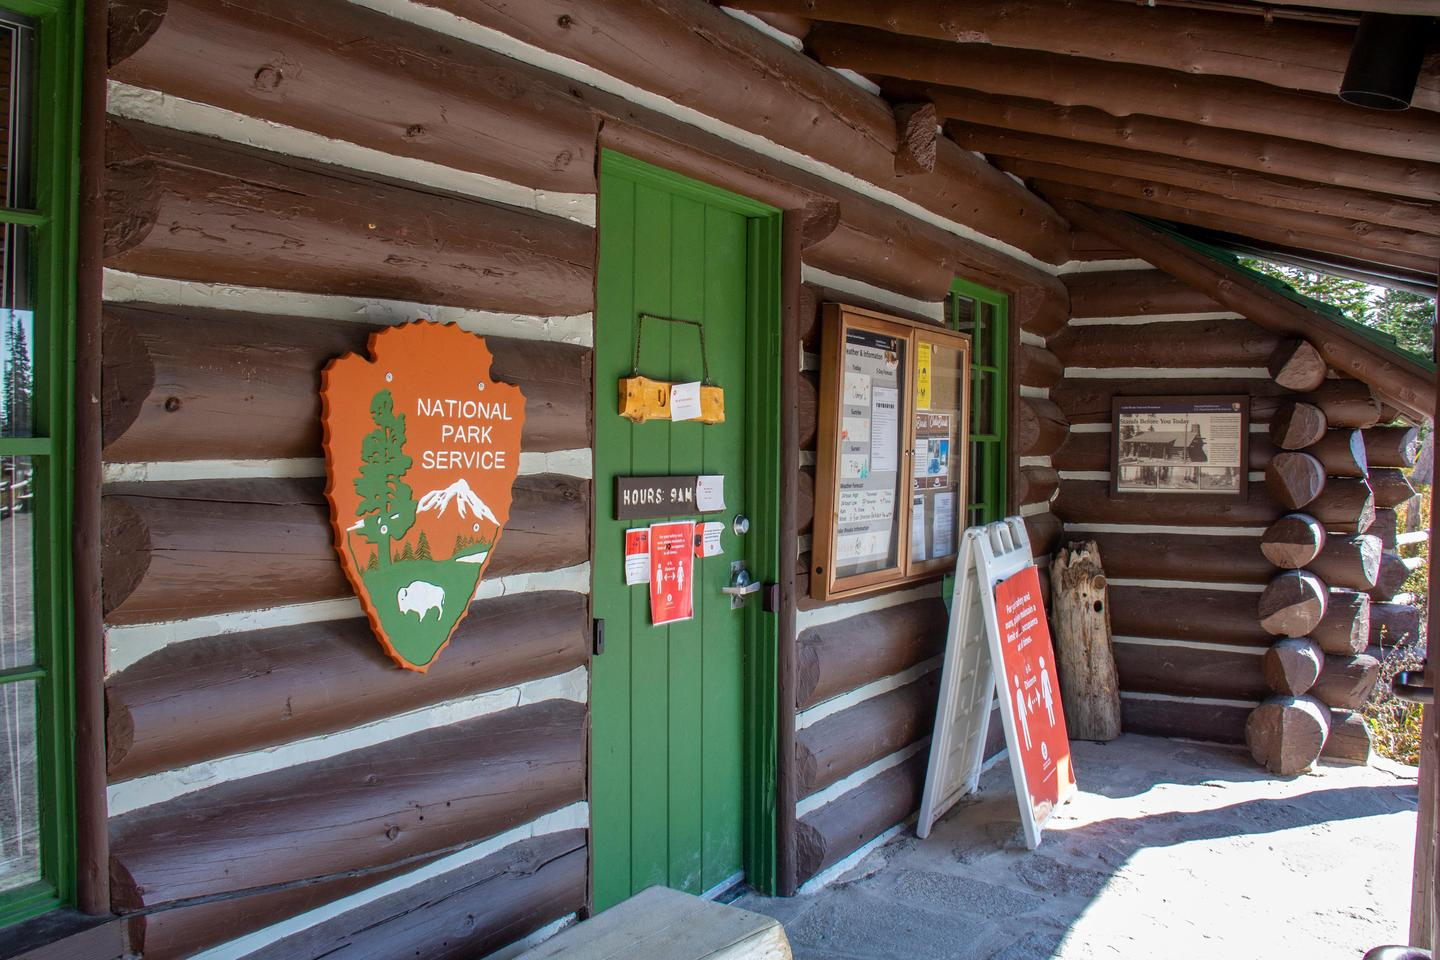 Information Center 3The 1937 log cabin serves as the information center and park store for Cedar Breaks National Monument.